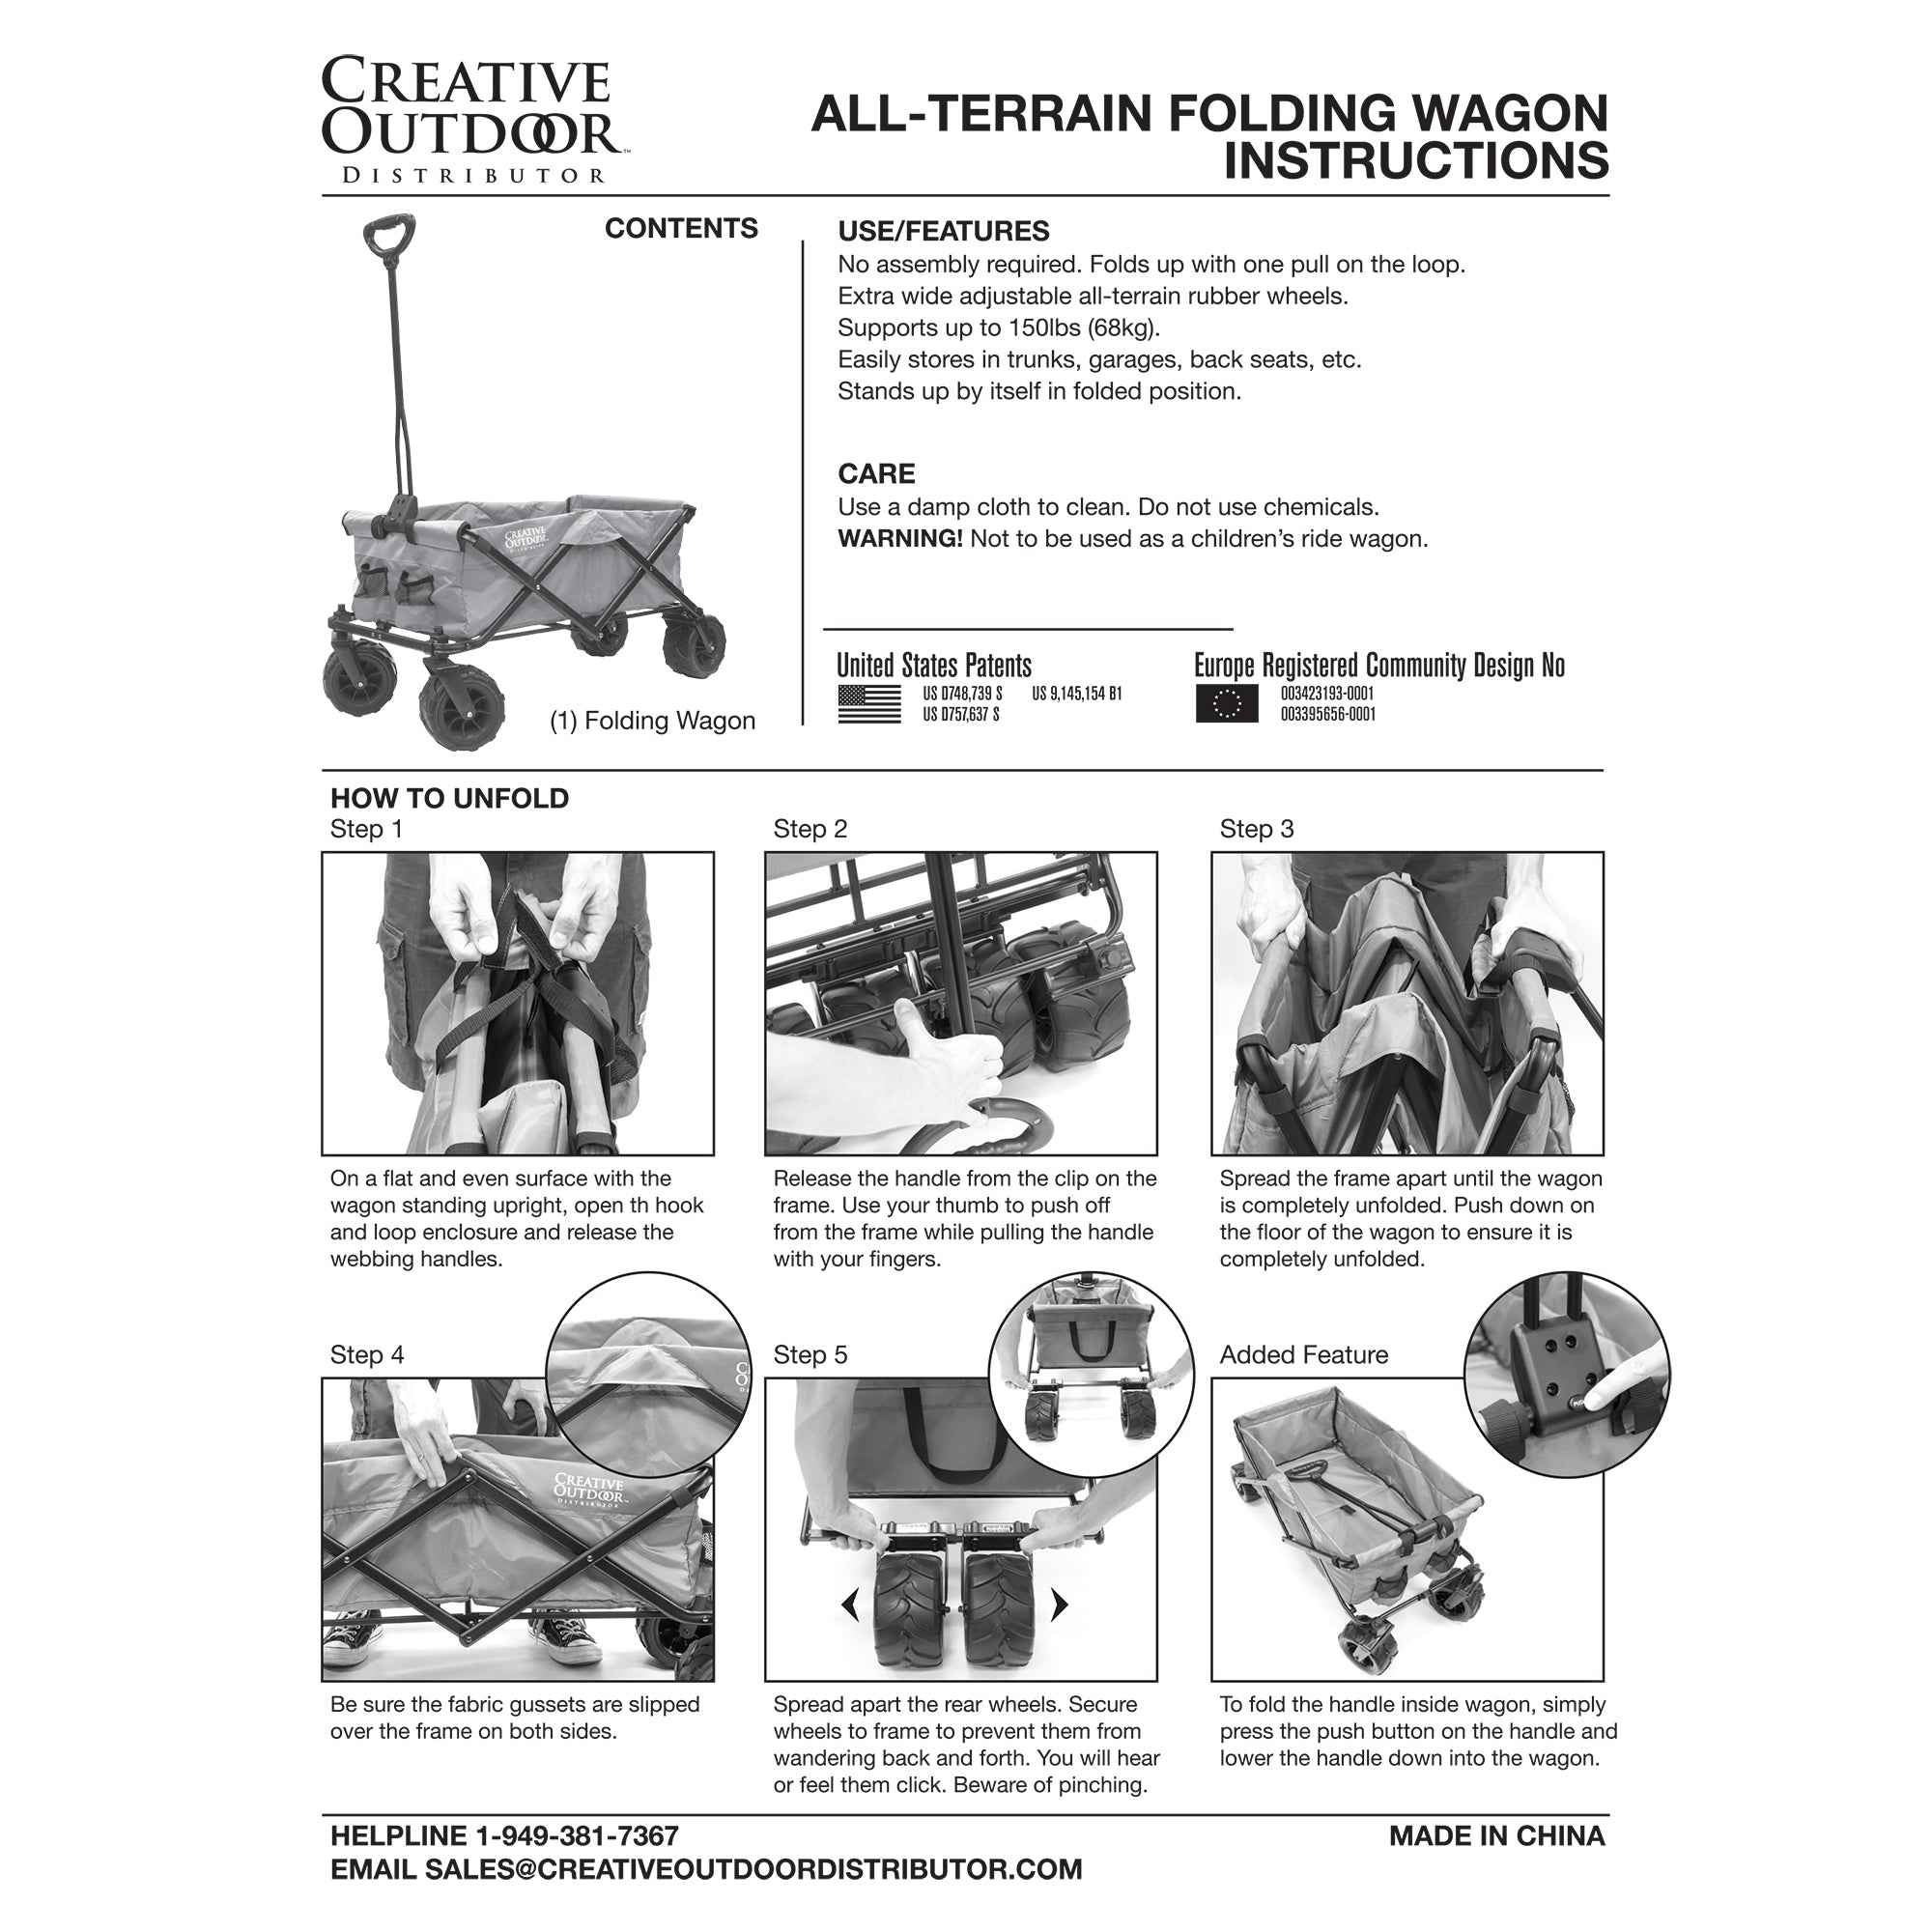 All-Terrain Folding Wagon Instructions